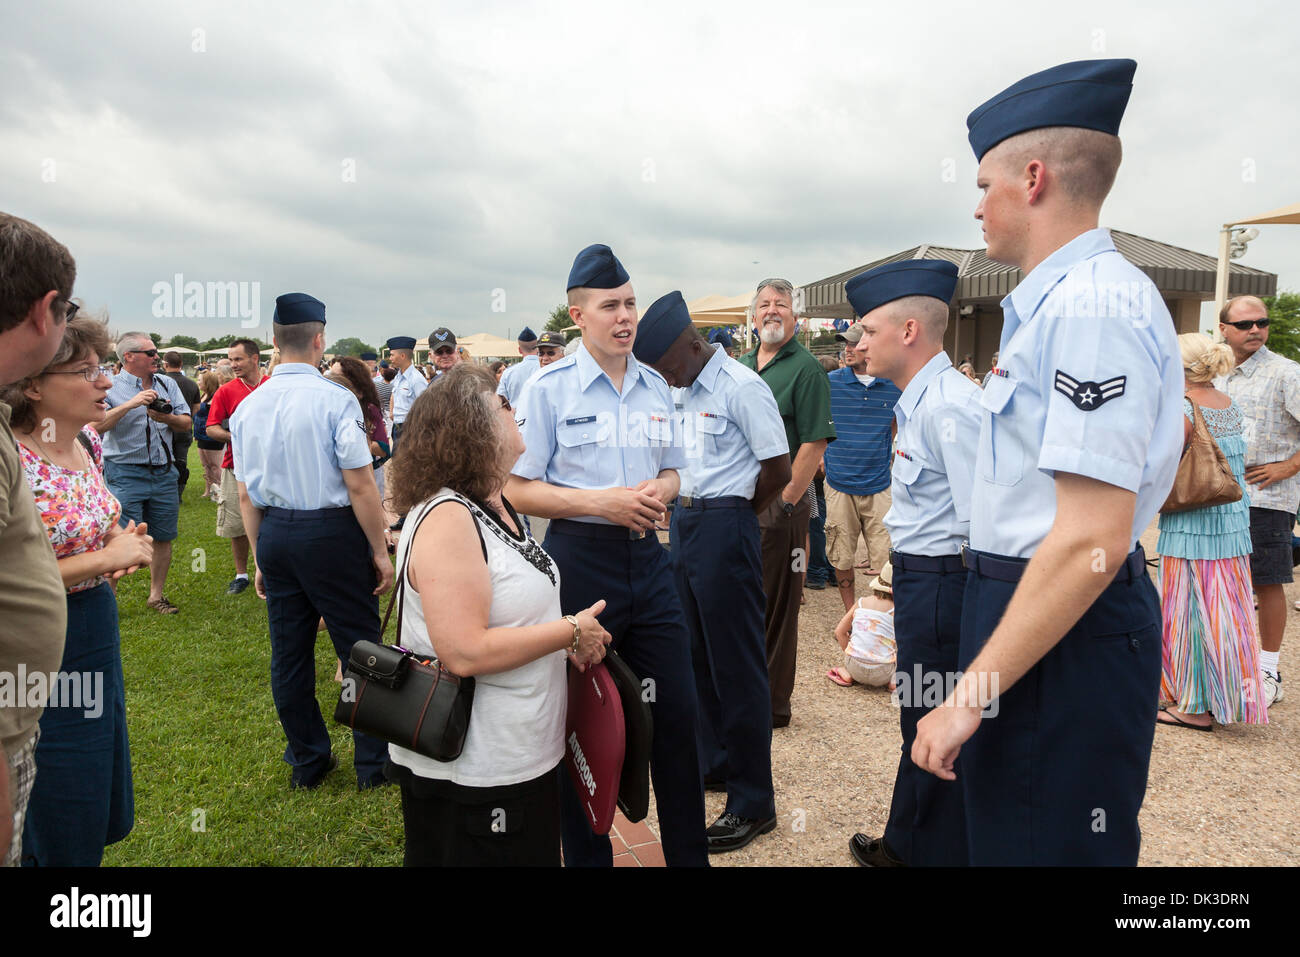 New airmen visiting with parents after United States Air Force basic